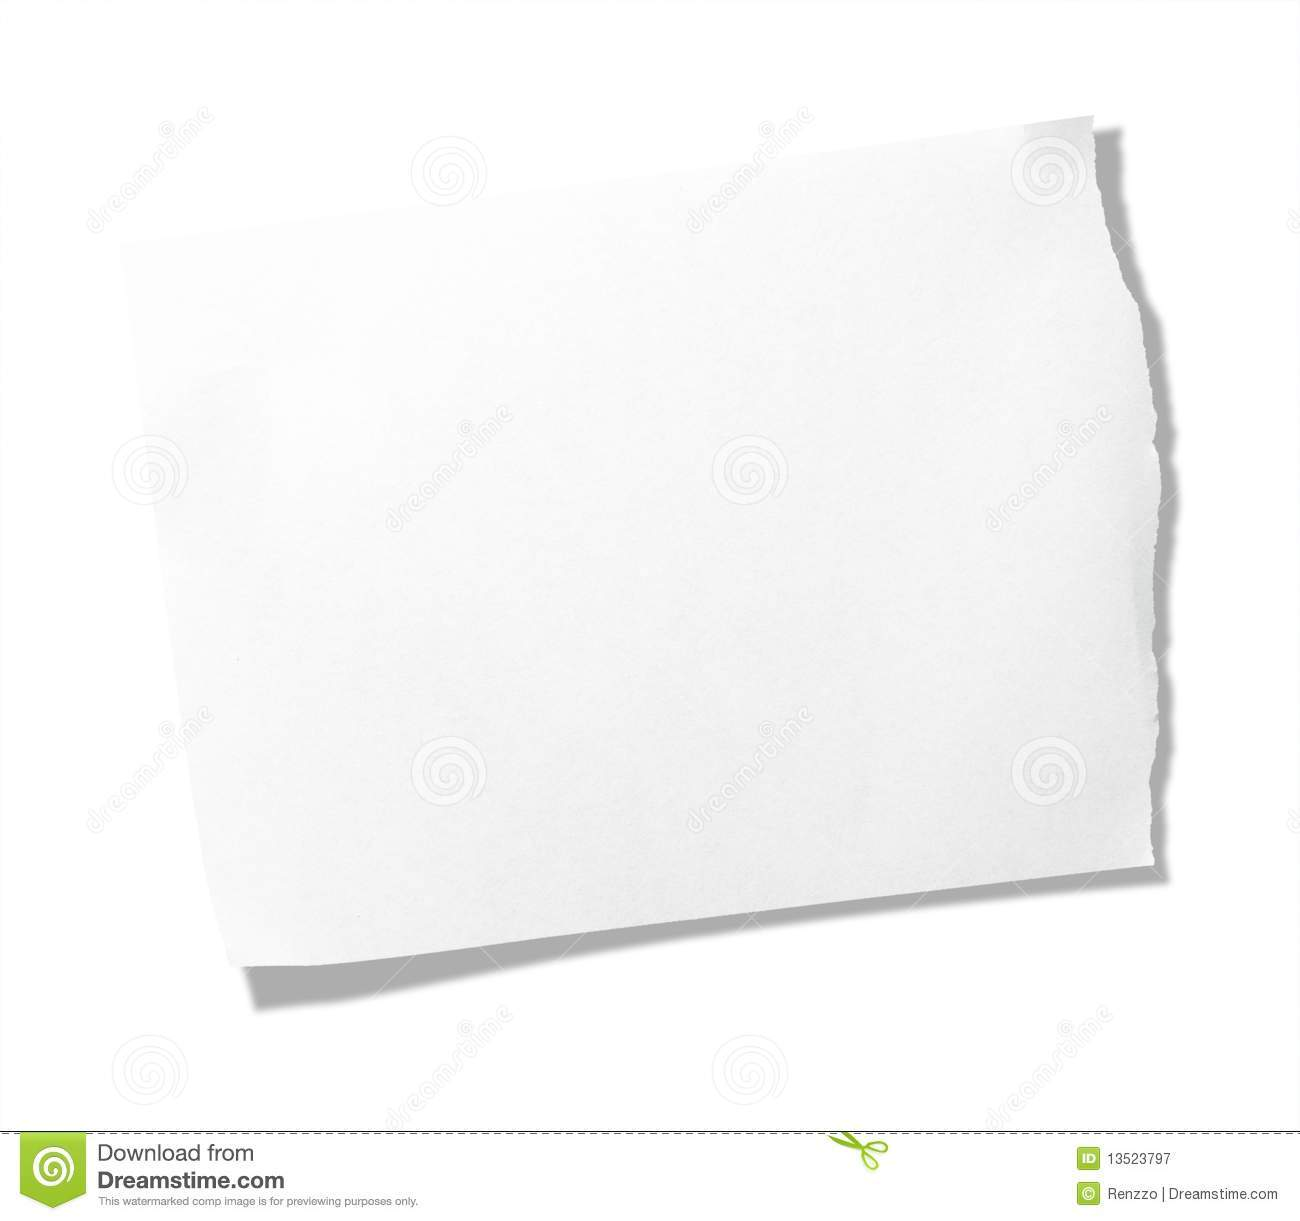 Torn piece of paper clipart 3 » Clipart Portal.